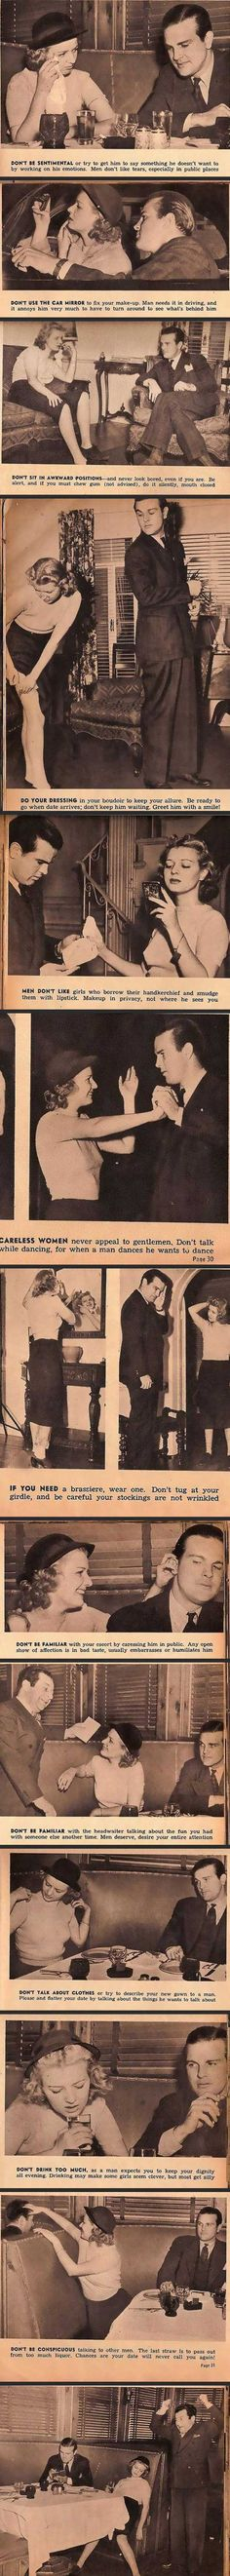 13 Hilarious and Sexist Dating Tips From 1938...